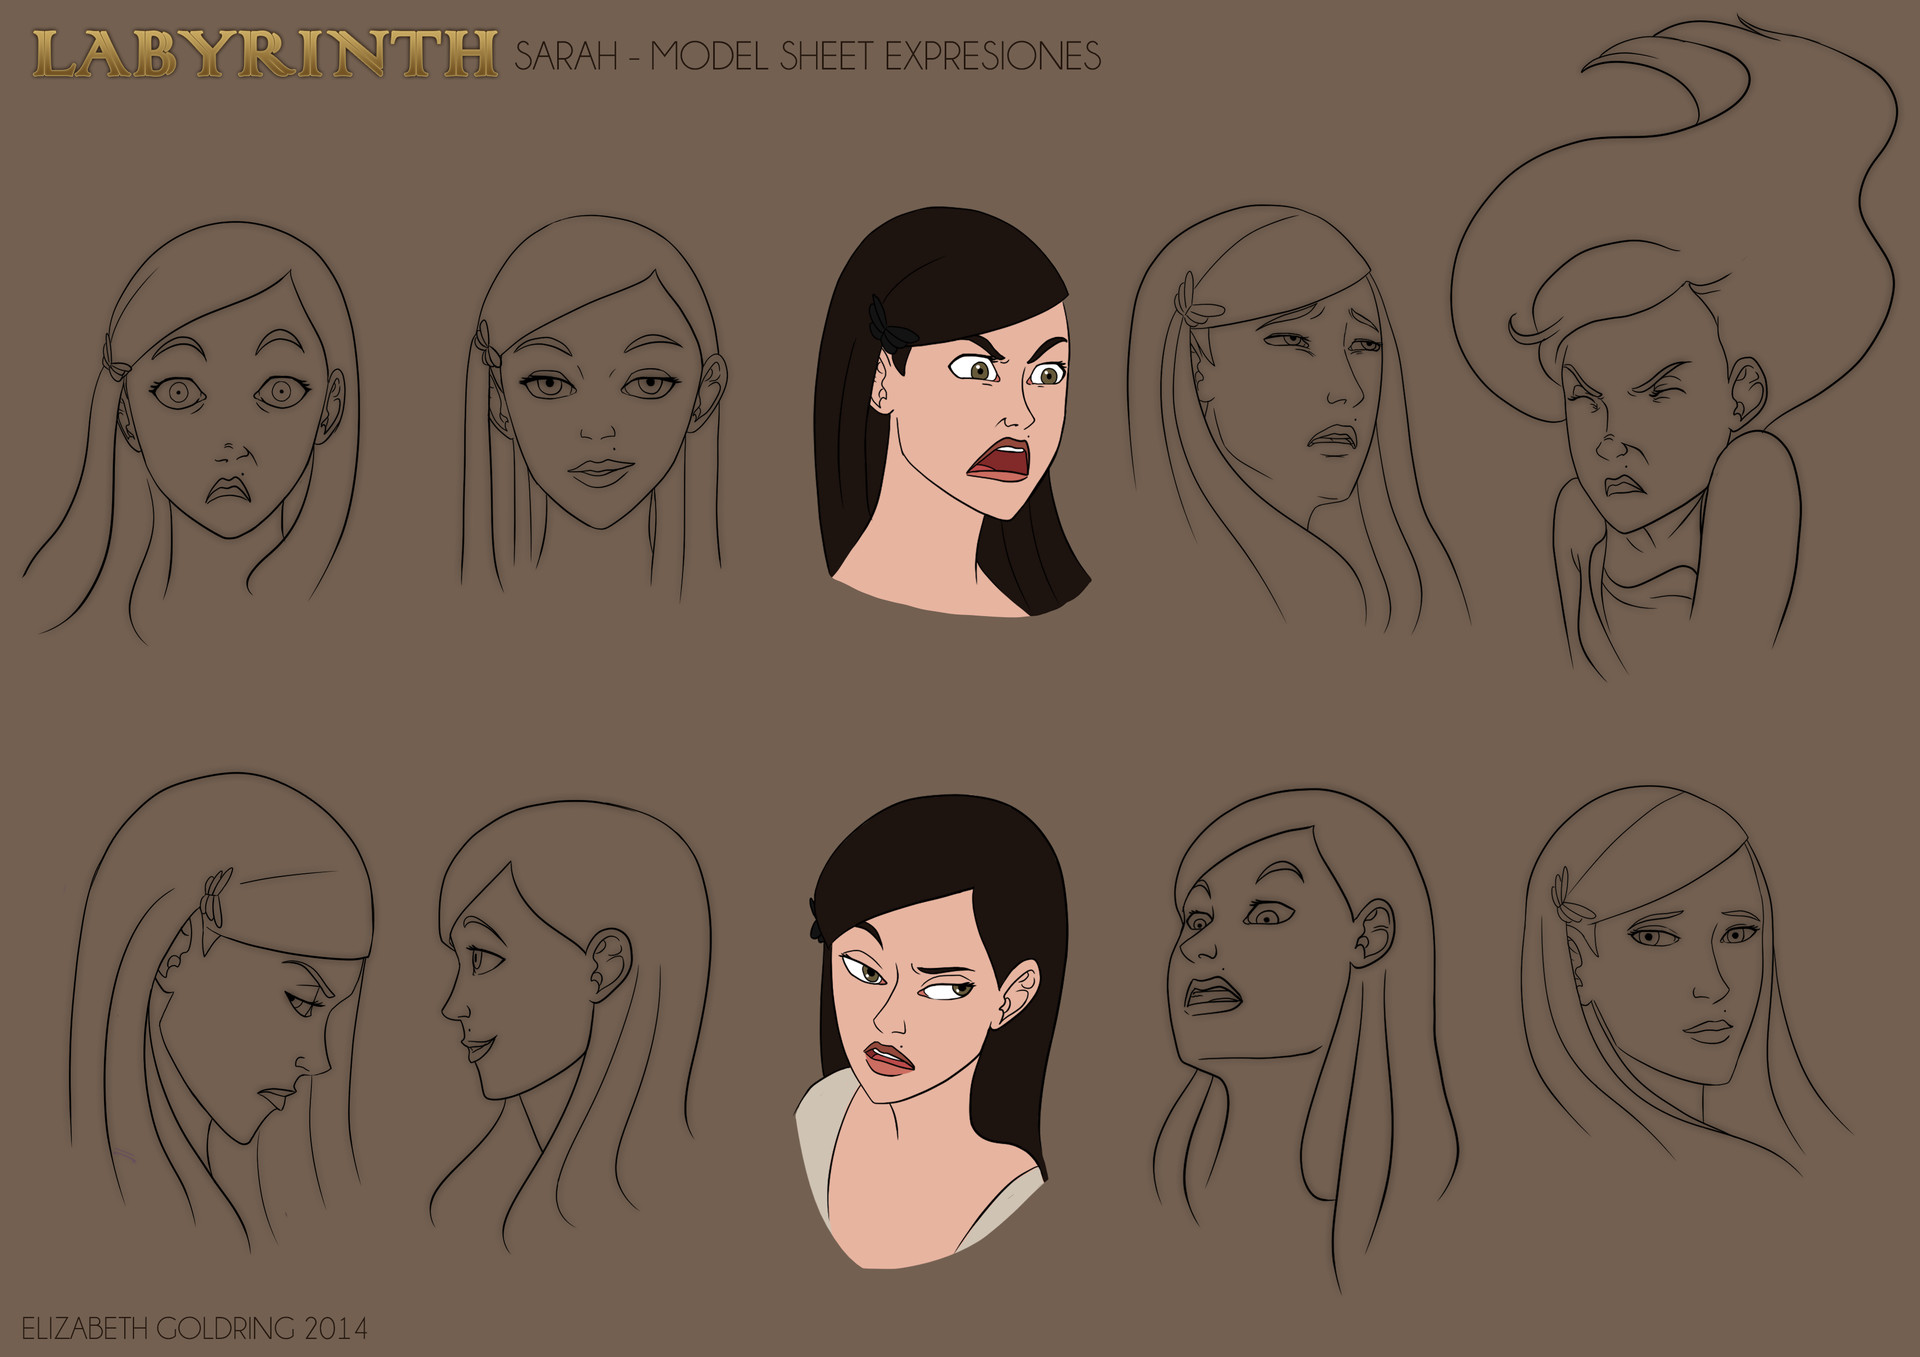 Elizabeth goldring sarah expression sheet